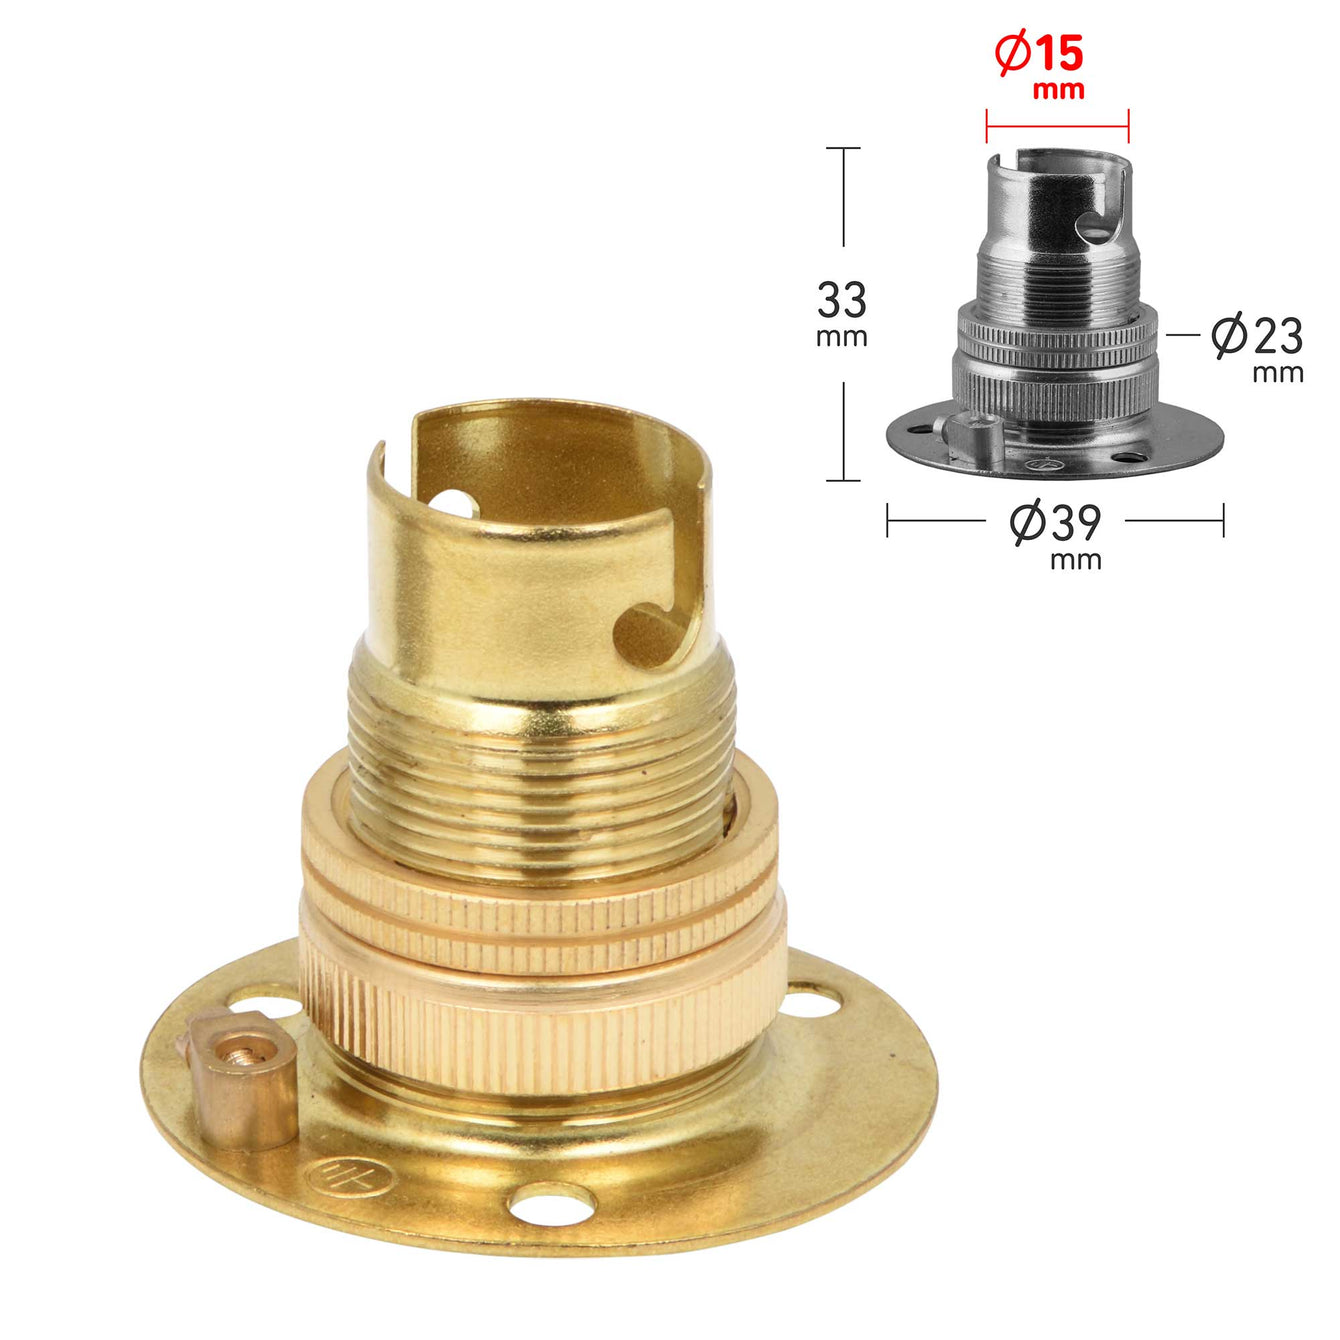 ElekTek Lamp Holder Fixed Batten Small Bayonet Cap SBC B15 With Shade Ring Solid Brass - Buy It Better Antique Brass